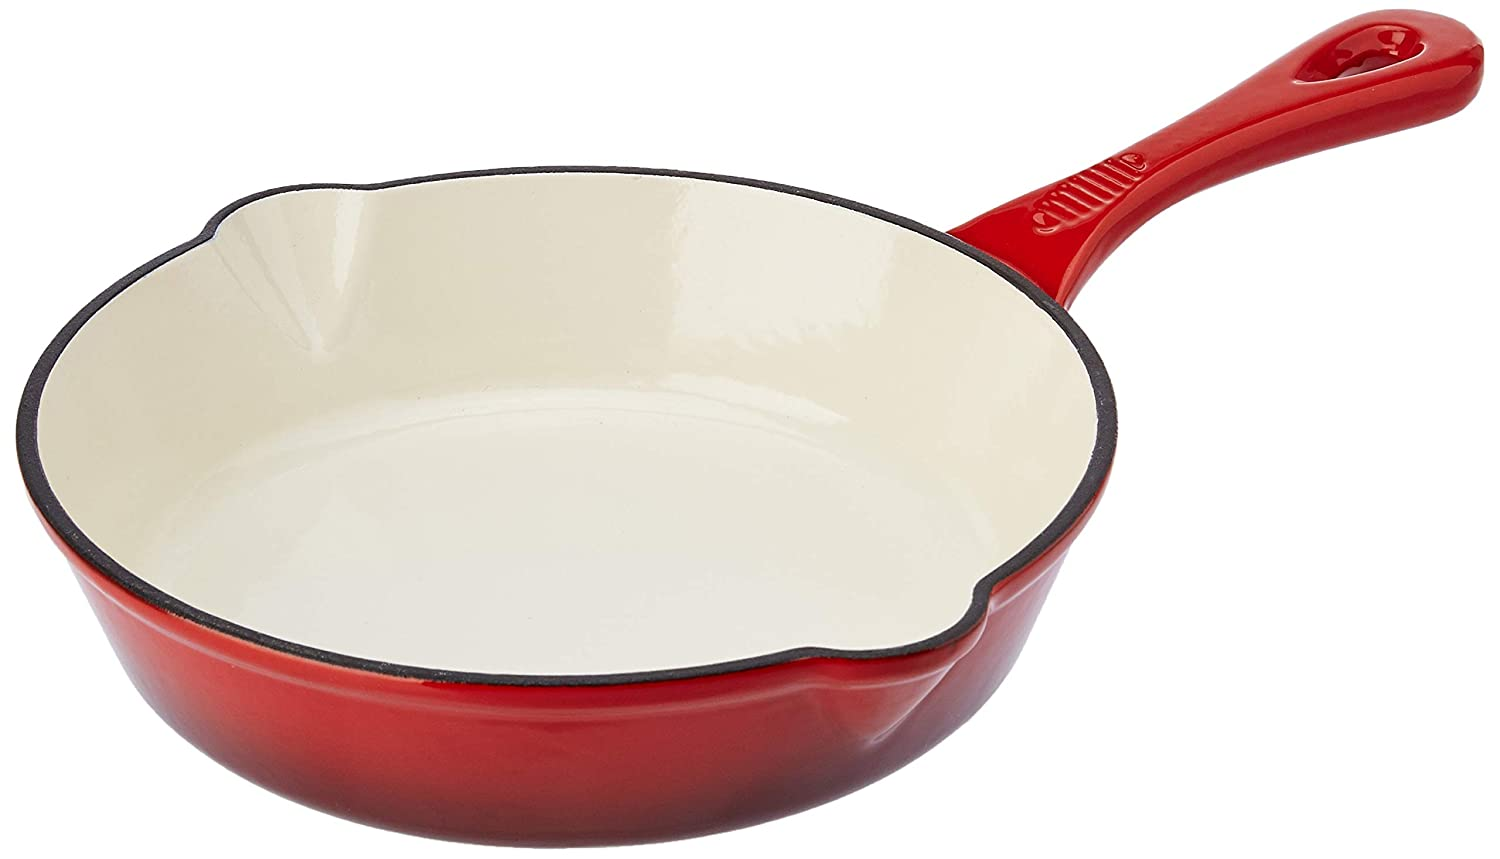 Solimo Cast Iron Fry Pan